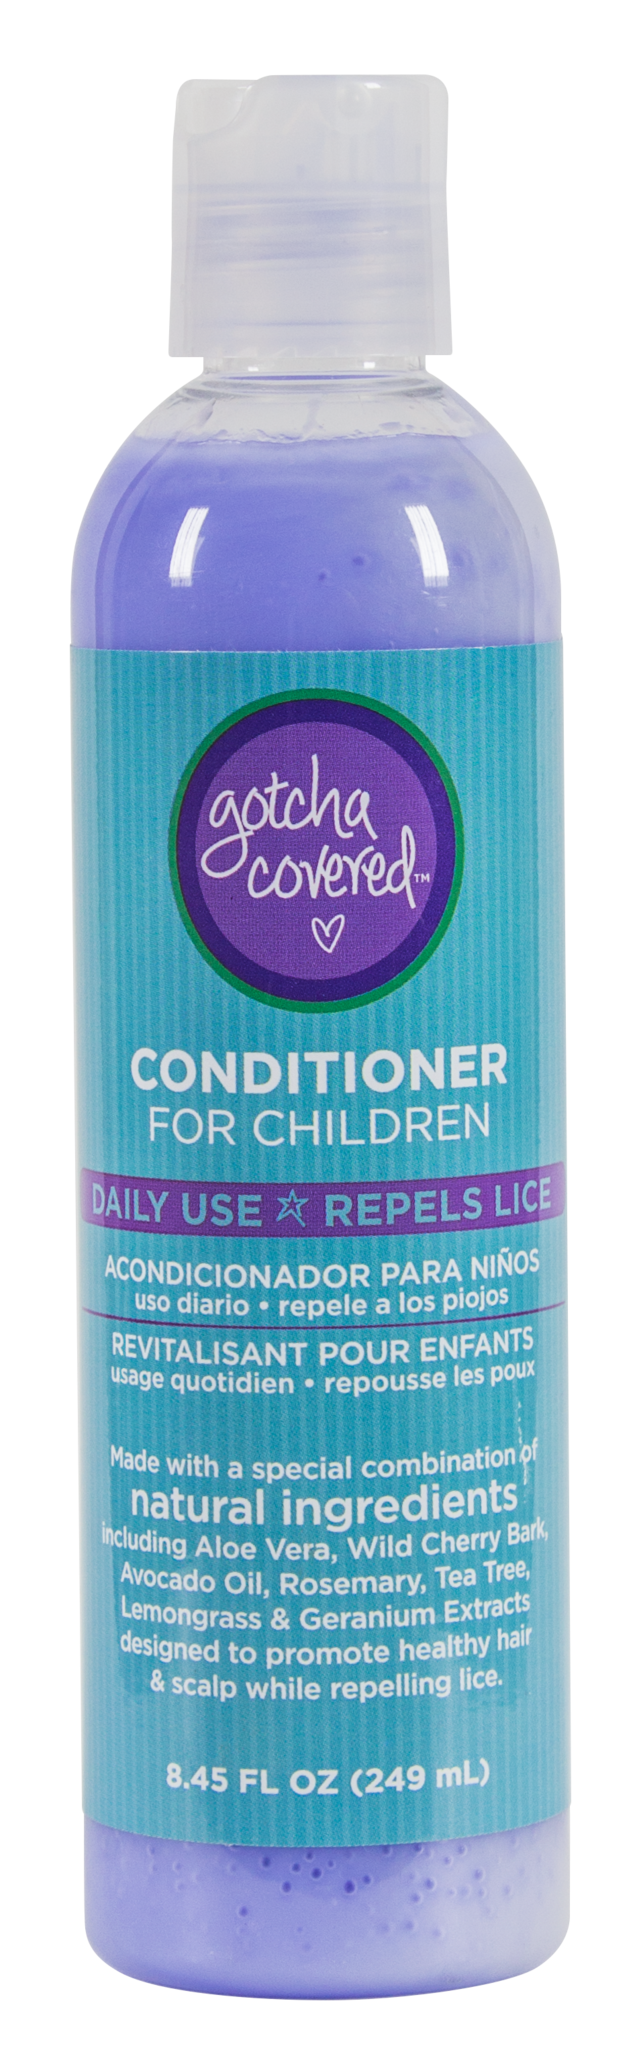 Gotcha Covered™ Conditioner